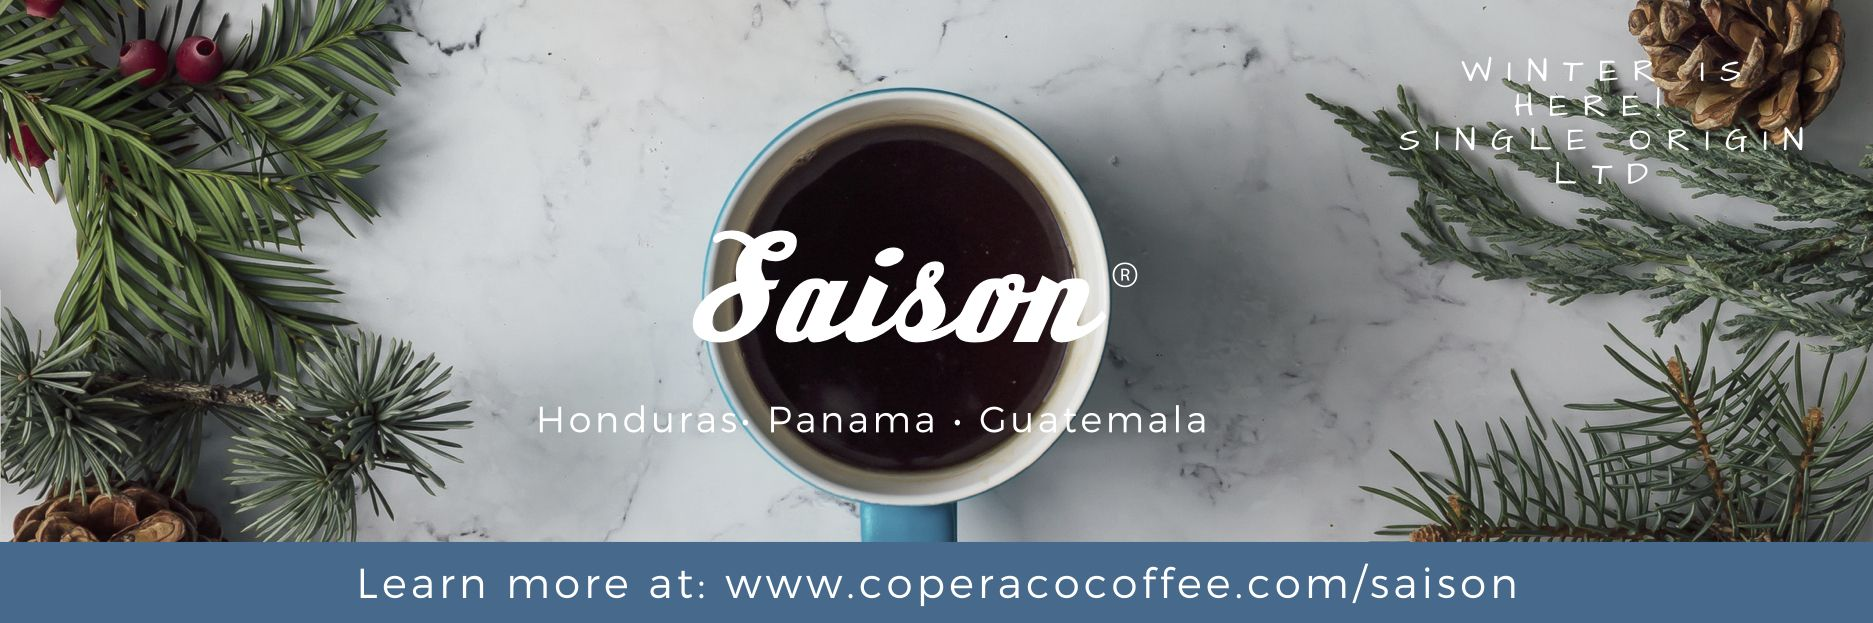 Coperaco seasonal coffees for Fall 2017 are now available !